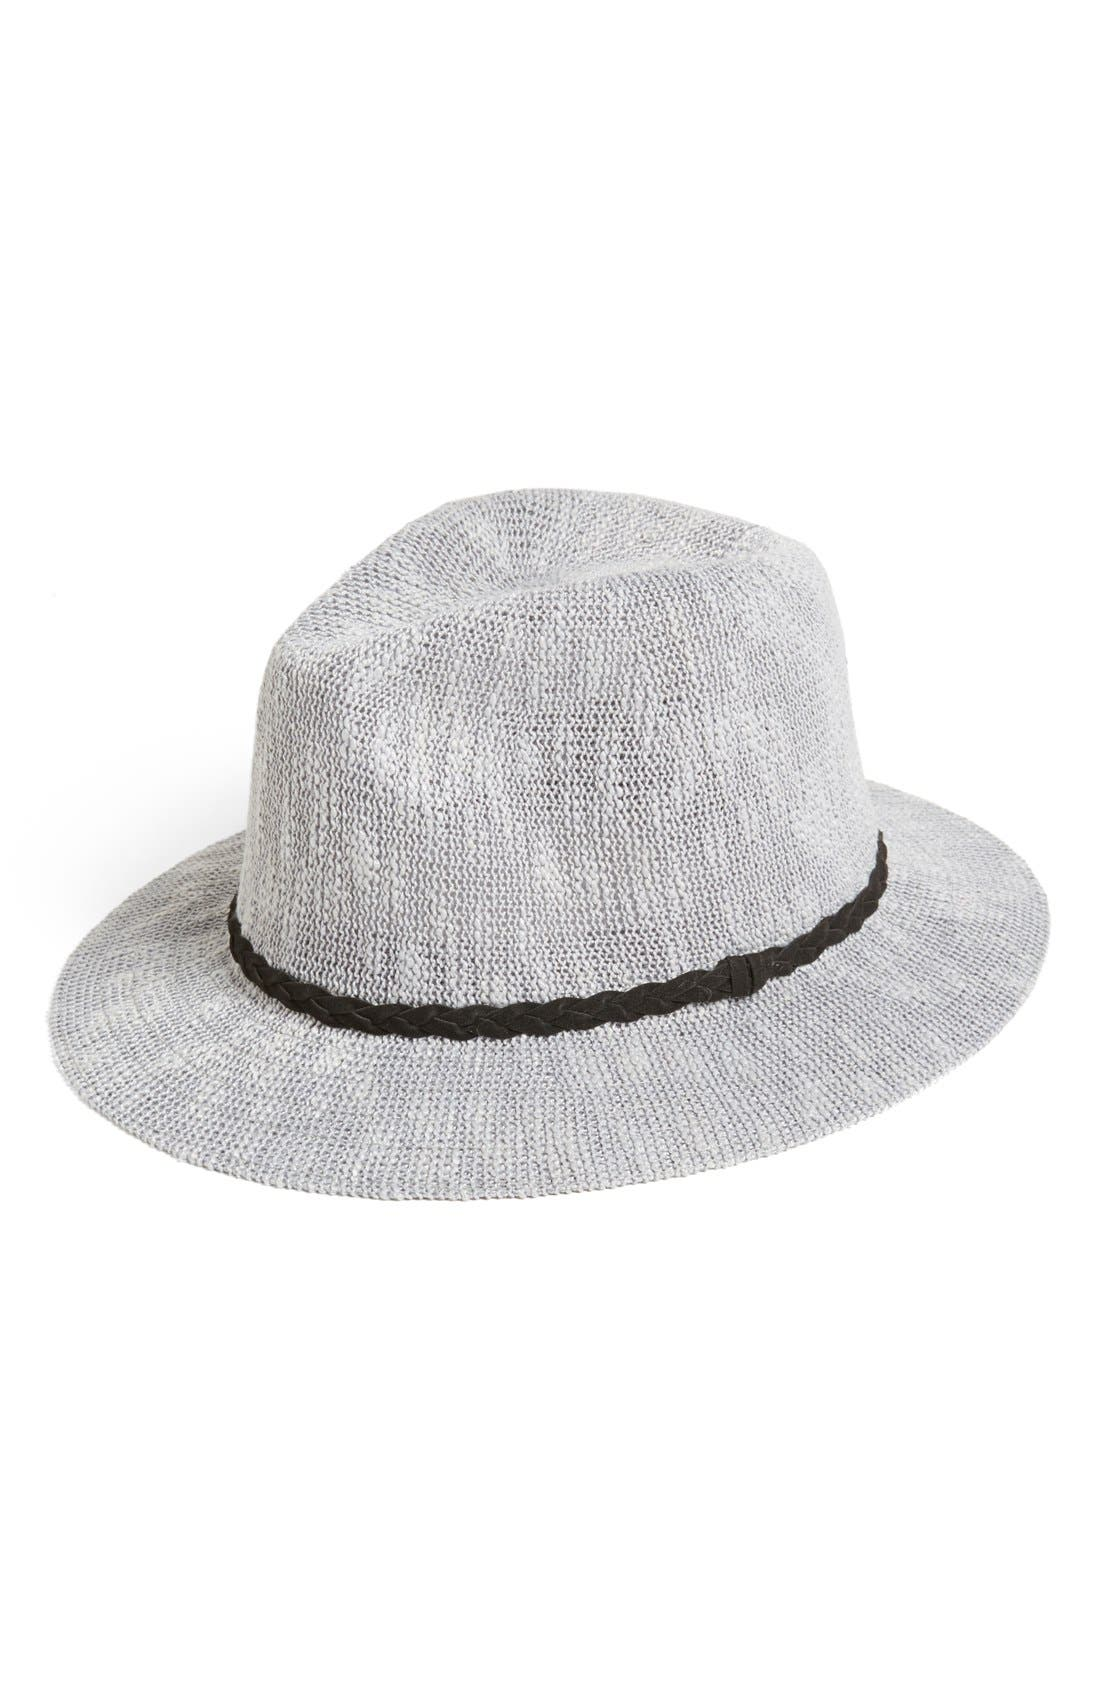 Alternate Image 1 Selected - BP. 'Panama' Slub Knit Fedora (Juniors) (Online Only)